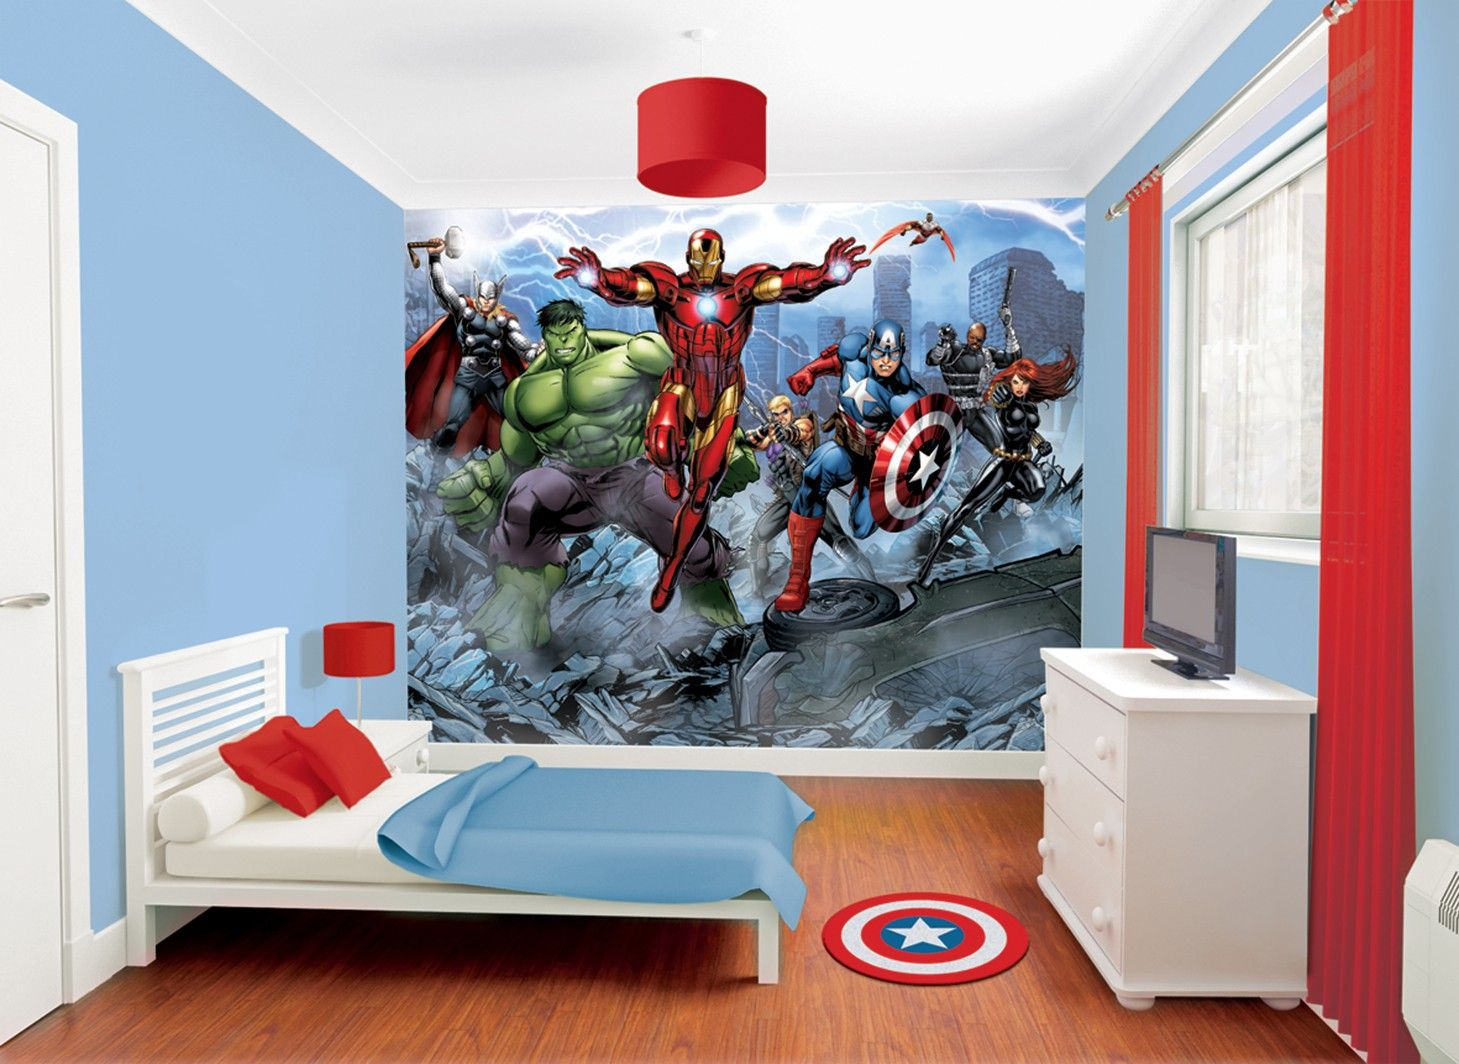 Marvel Themed Room Inspiration Marvel Avengers Wallpaper Murals.the Boys Need This For Their Inspiration Design